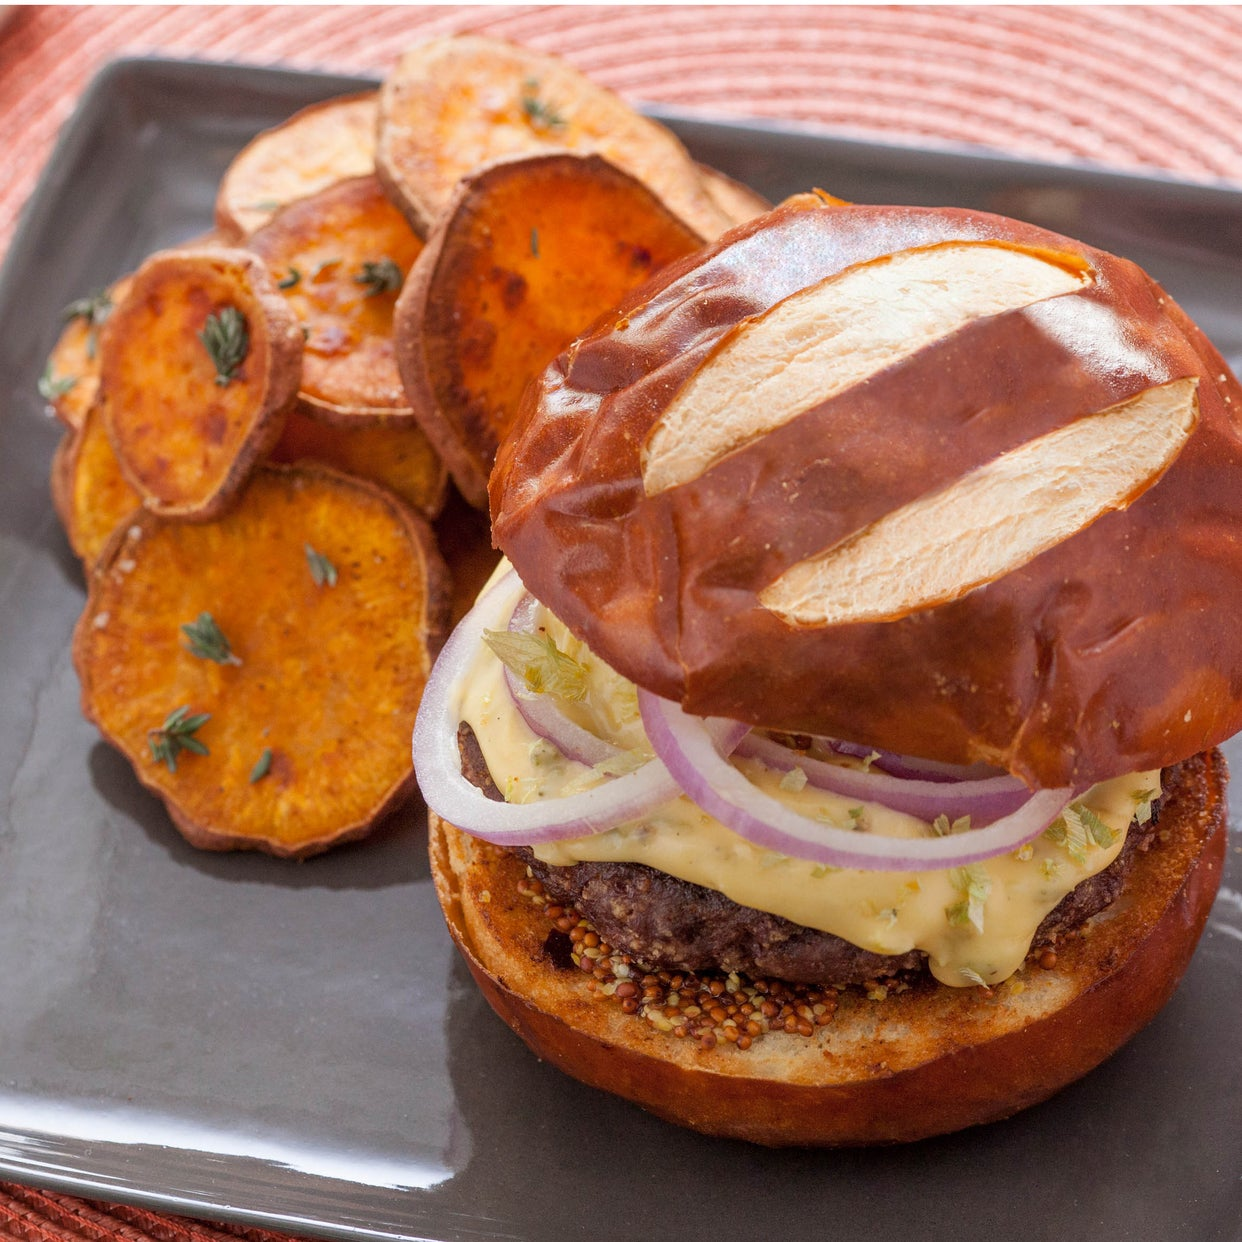 Pretzel Burgers with Hoppy Cheddar Sauce & Roasted Sweet Potato Rounds